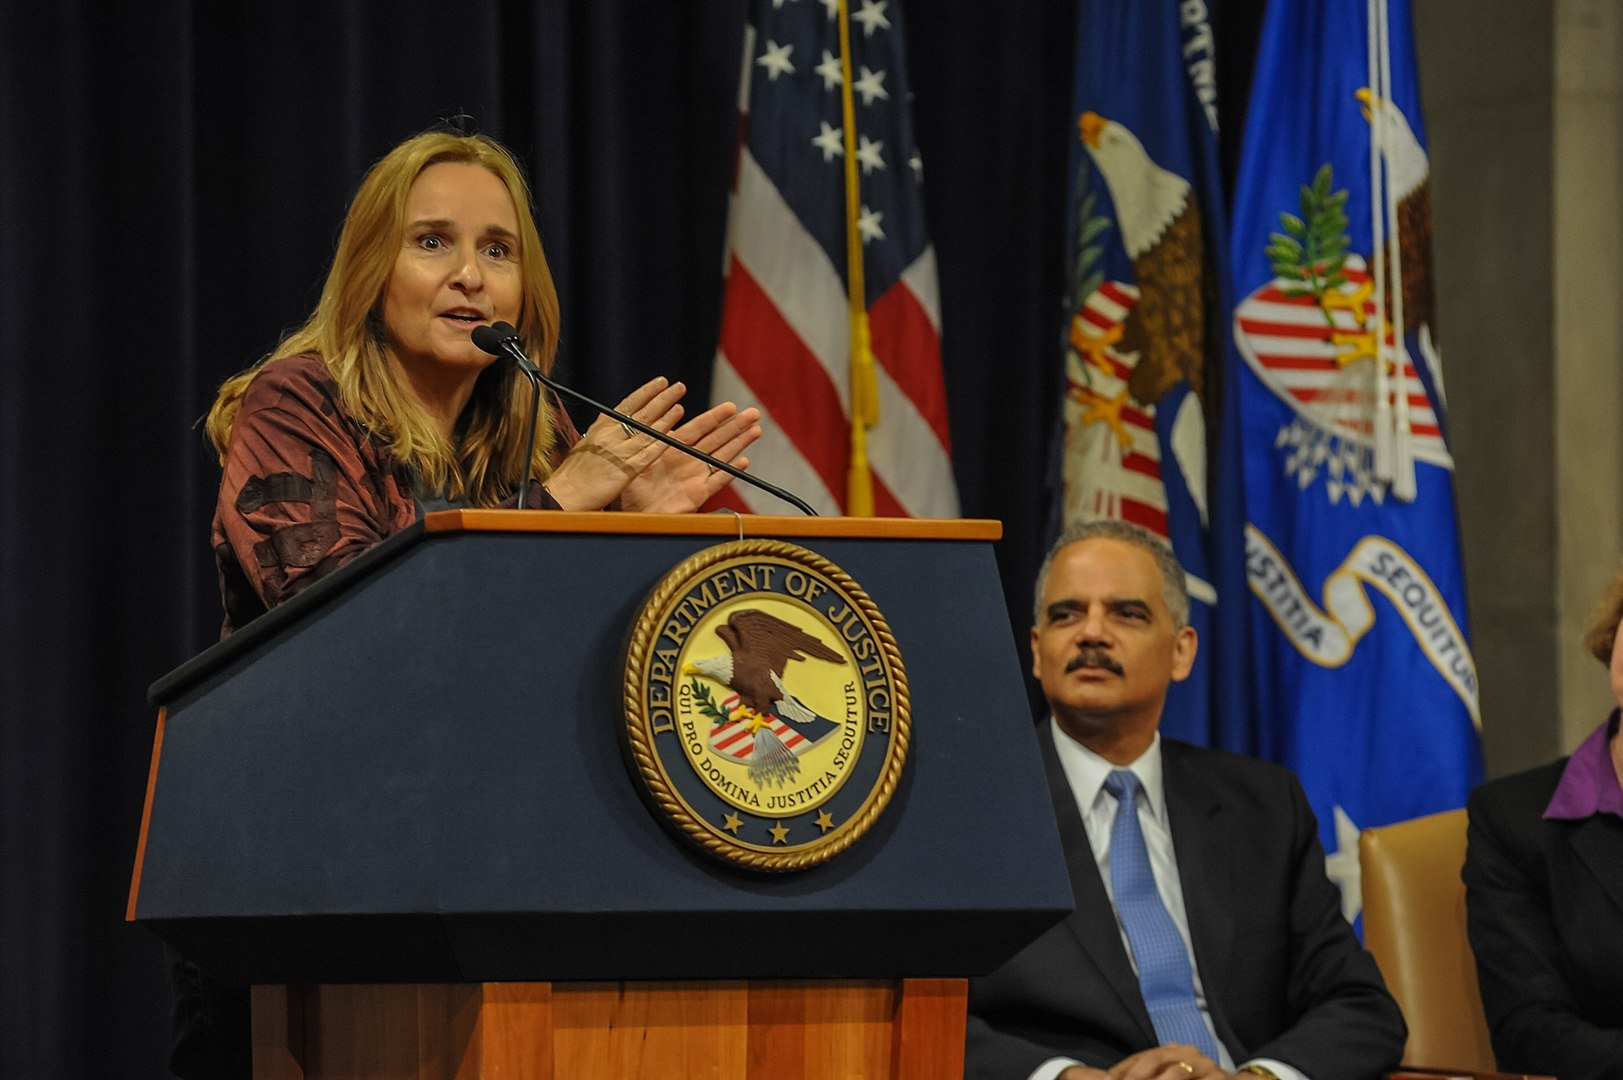 Melissa Etheridge shared her personal experiences of advocating for the LGBT community at a United States Department of Justice Event, June, 2013 | Photo: GettyImages